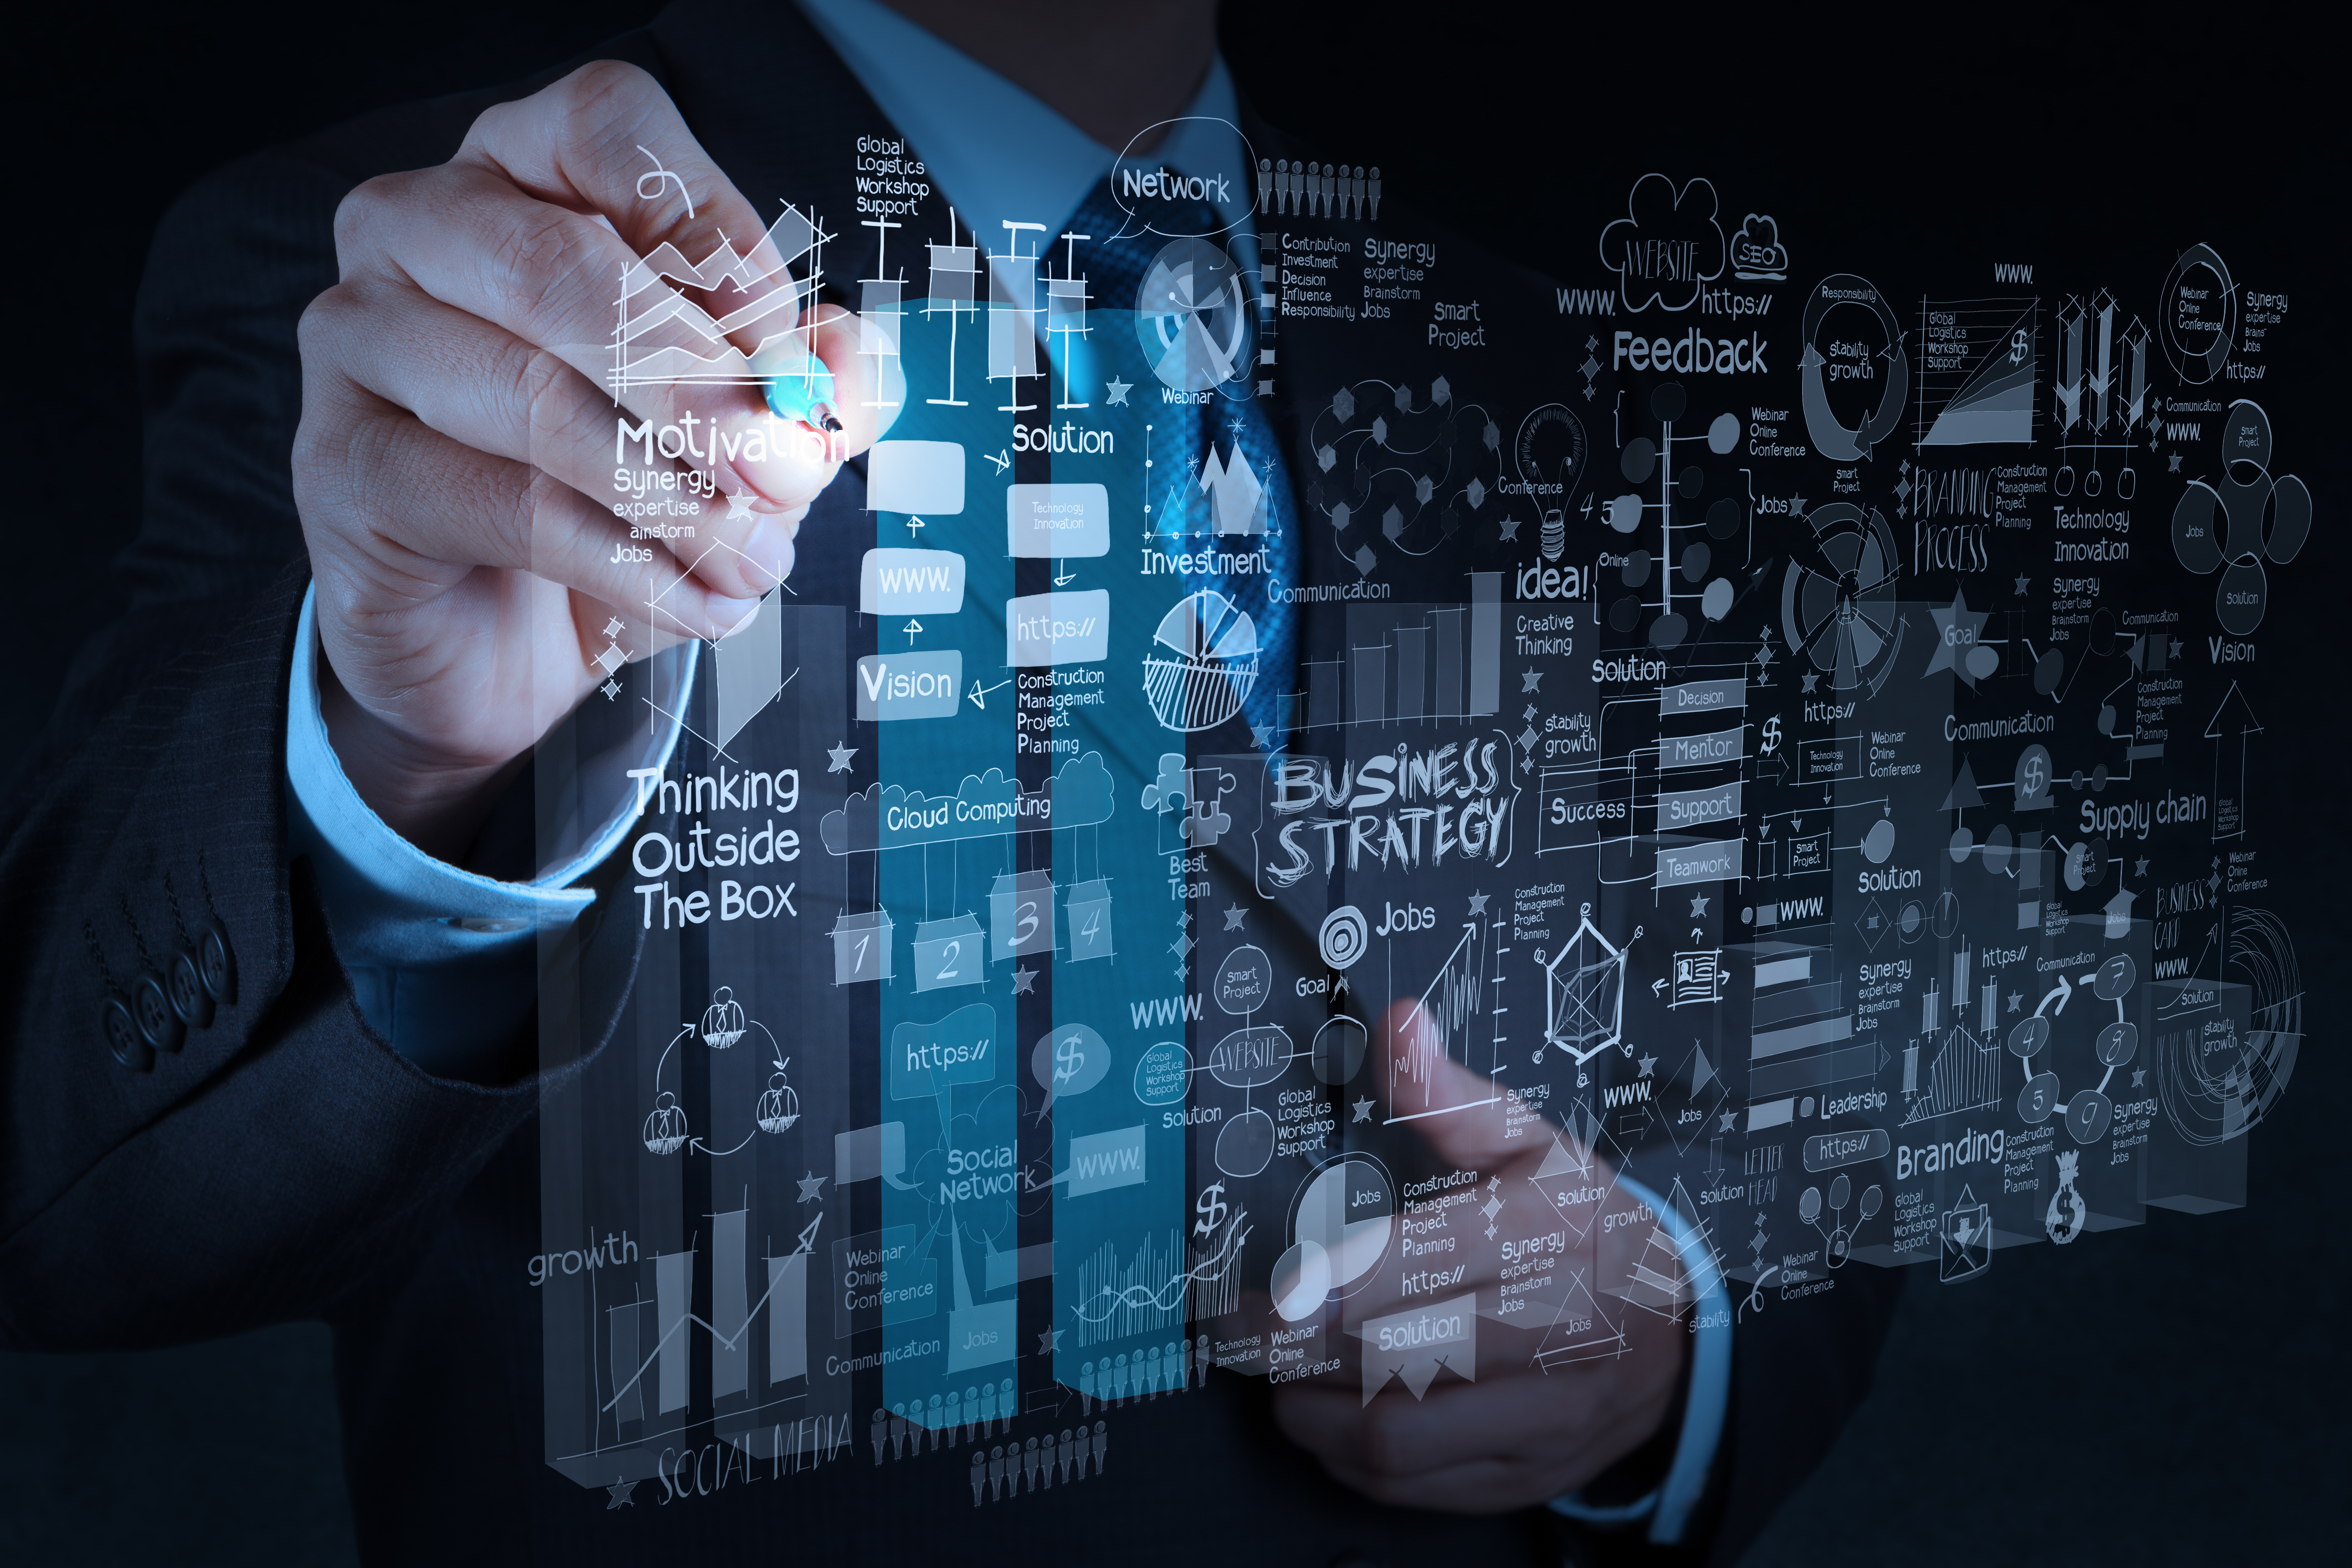 Technology Management Image: Developing Innovative Ideas For New Companies: The First